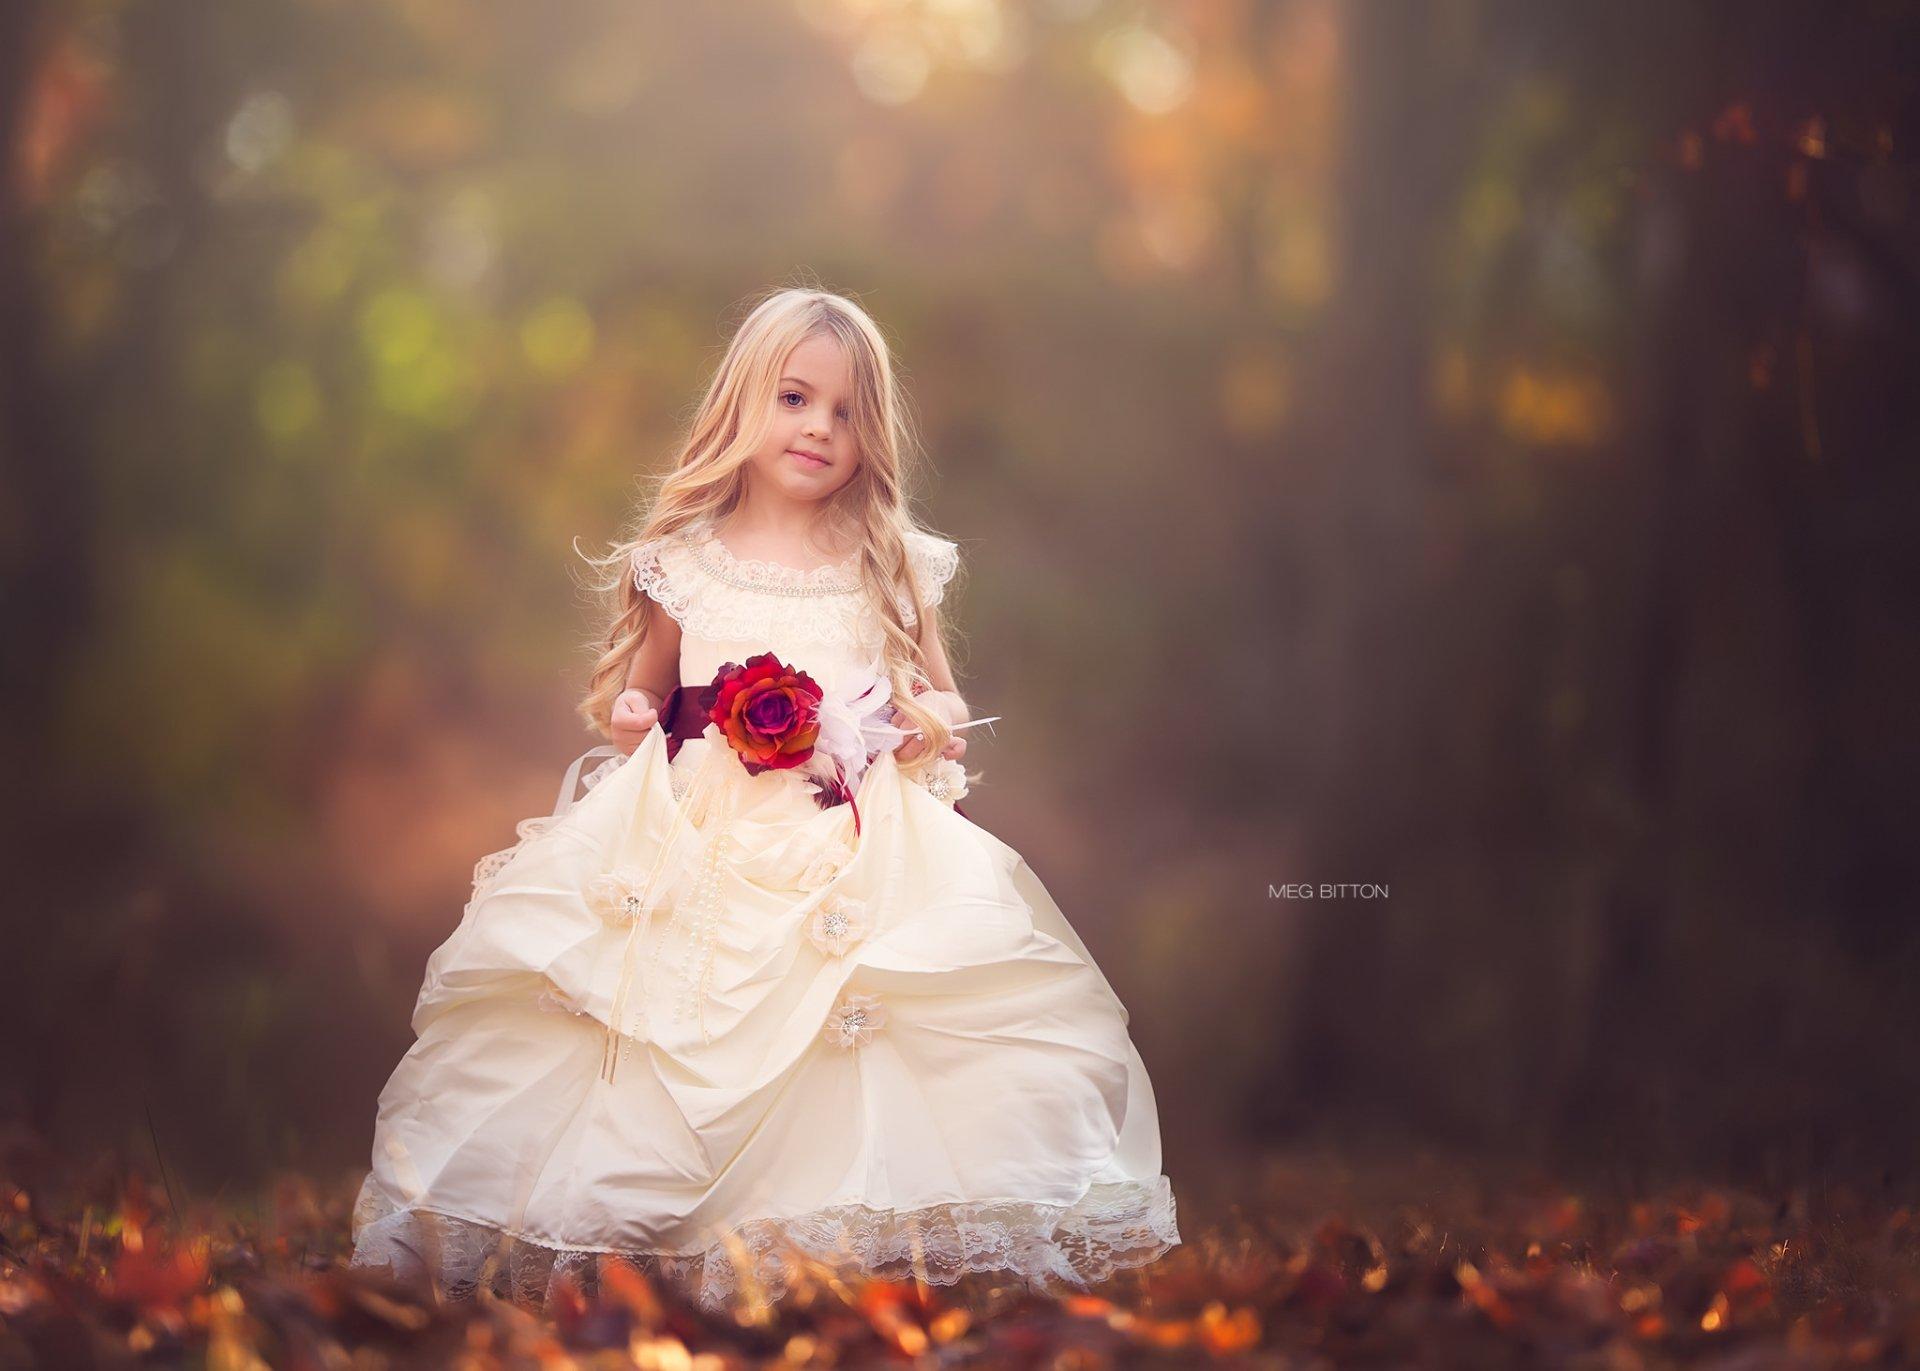 Cute Little Girl With Rose Hd Wallpaper Background Image